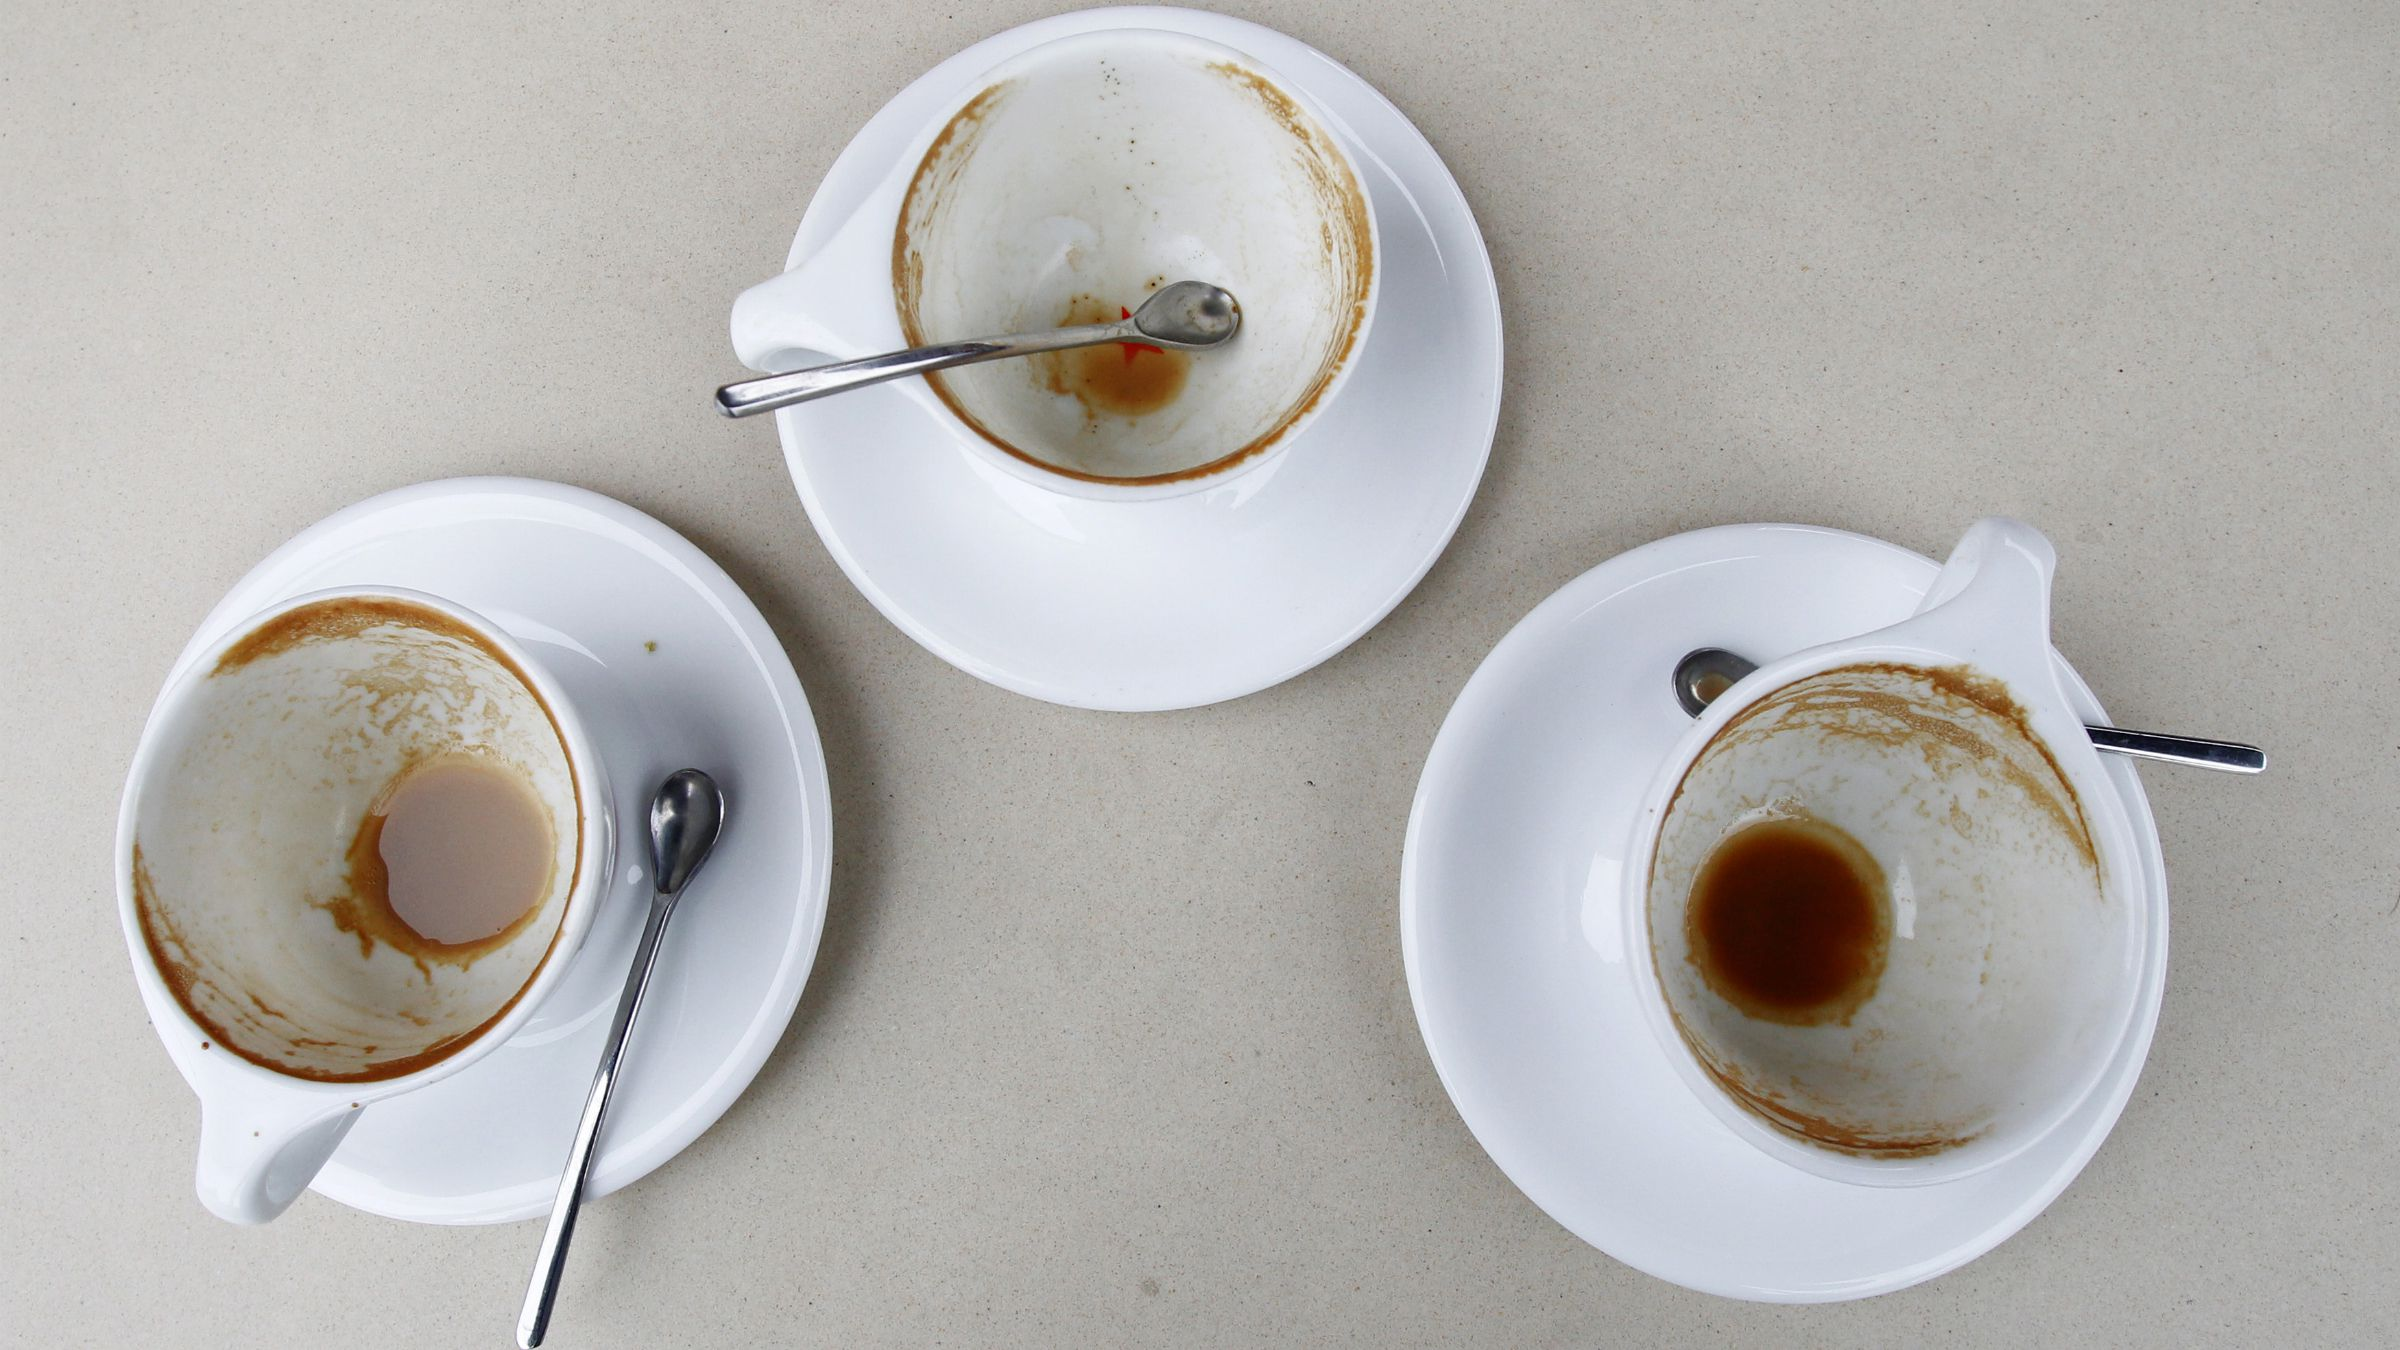 Three empty cups on a table are pictured at the Silver lake location of Intelligentsia Coffee and Tea in the Silver Lake area of Los Angeles October 19, 2010.